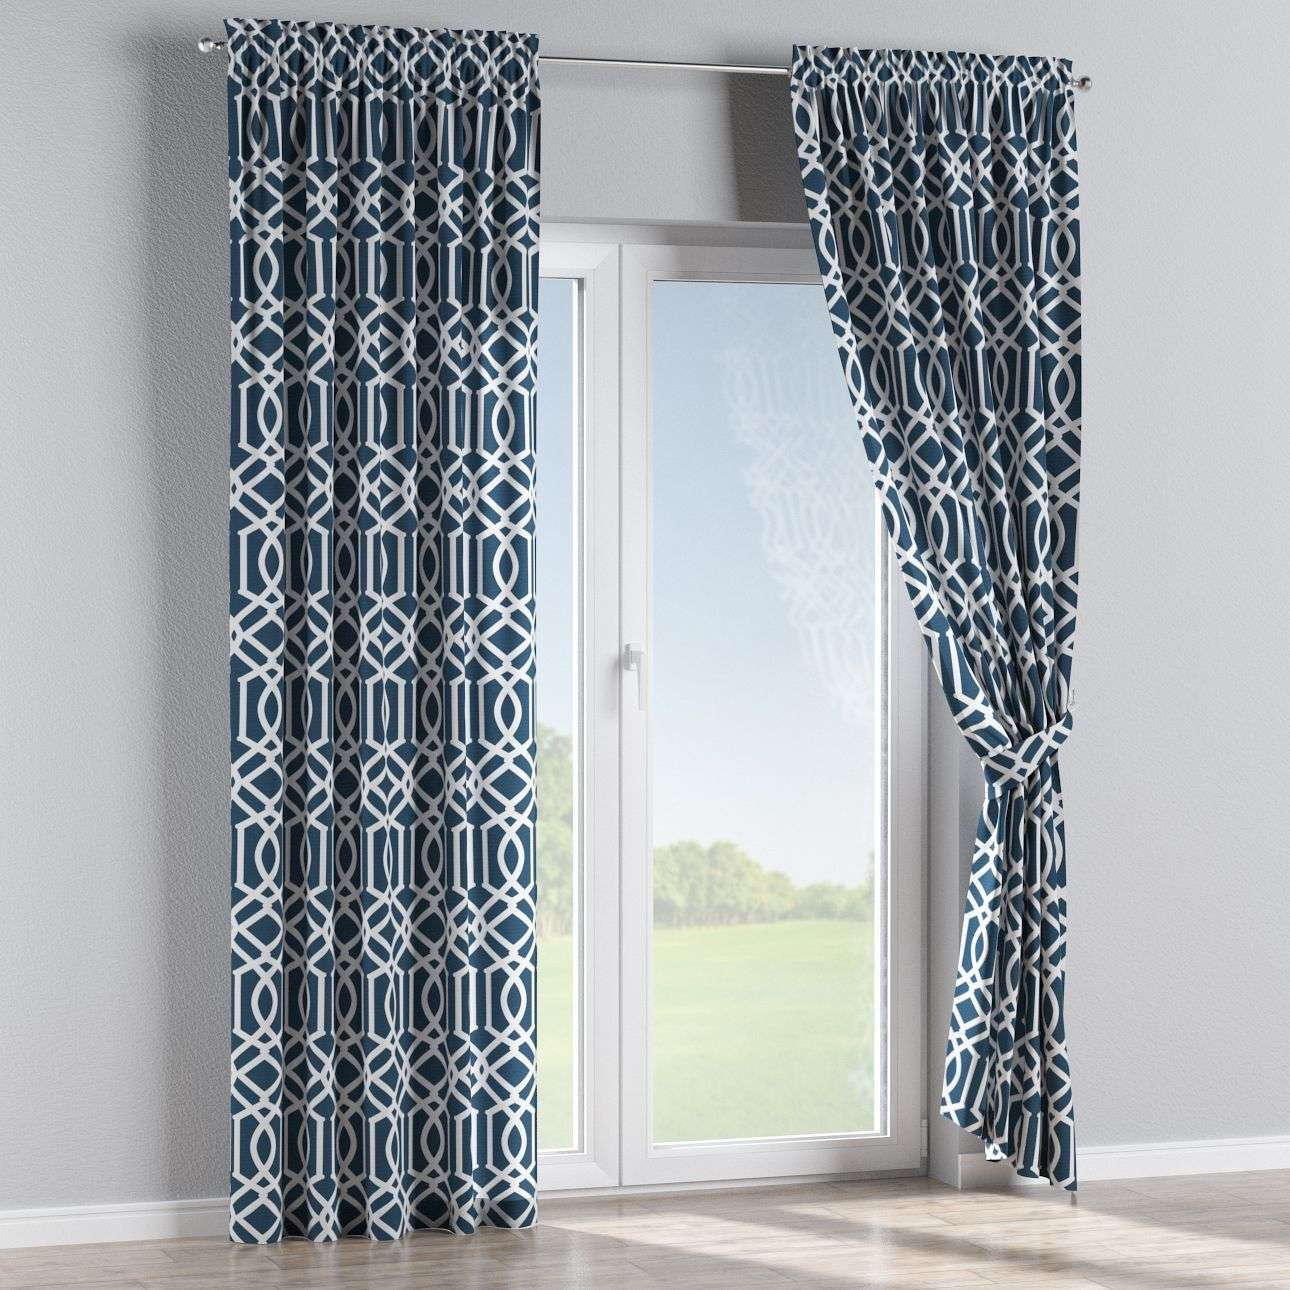 Slot and frill curtains 130 x 260 cm (51 x 102 inch) in collection Comic Book & Geo Prints, fabric: 135-10